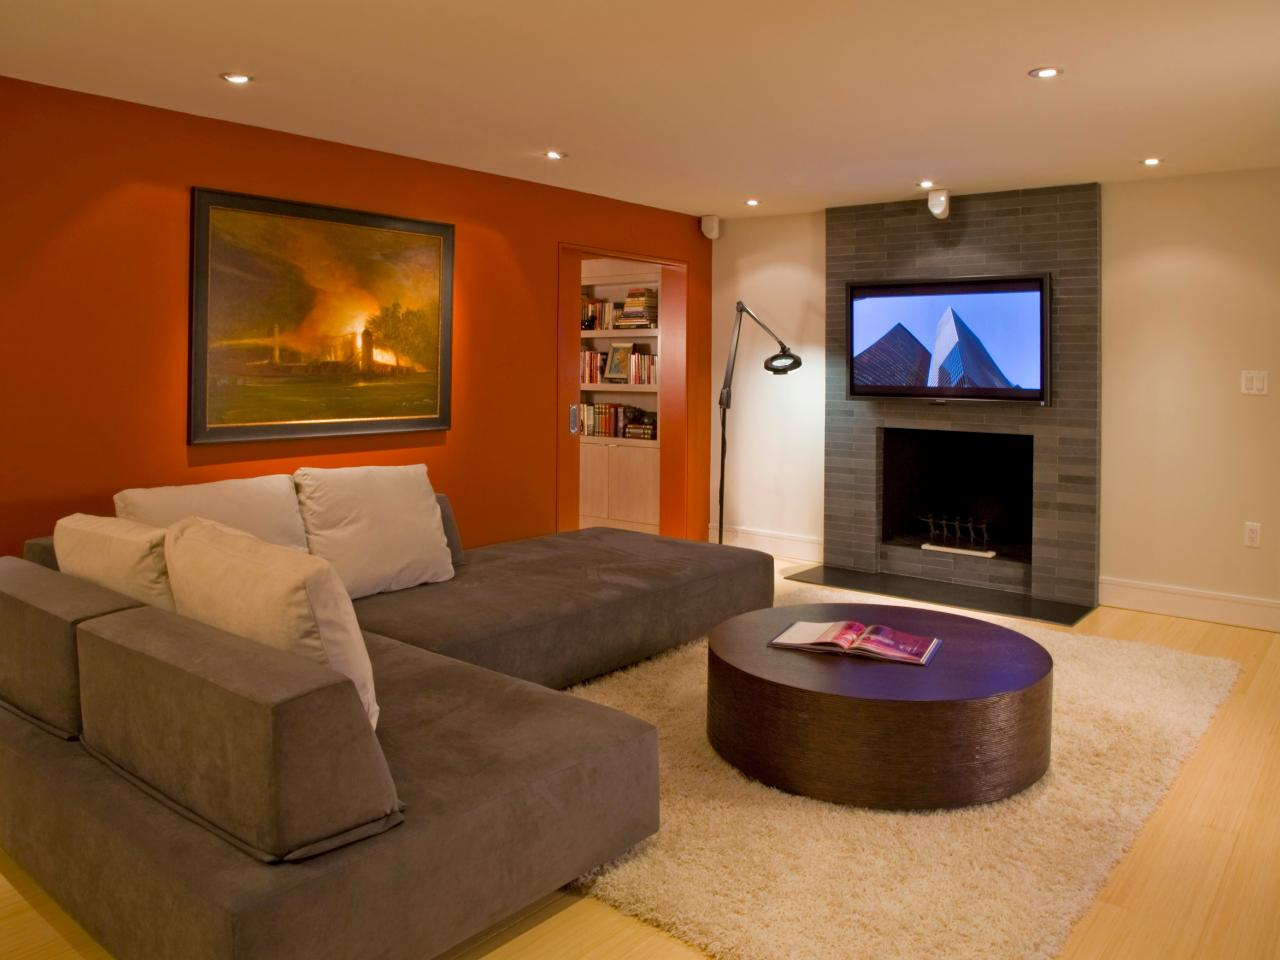 Basement flooring options and ideas pictures options for Best carpet for basements